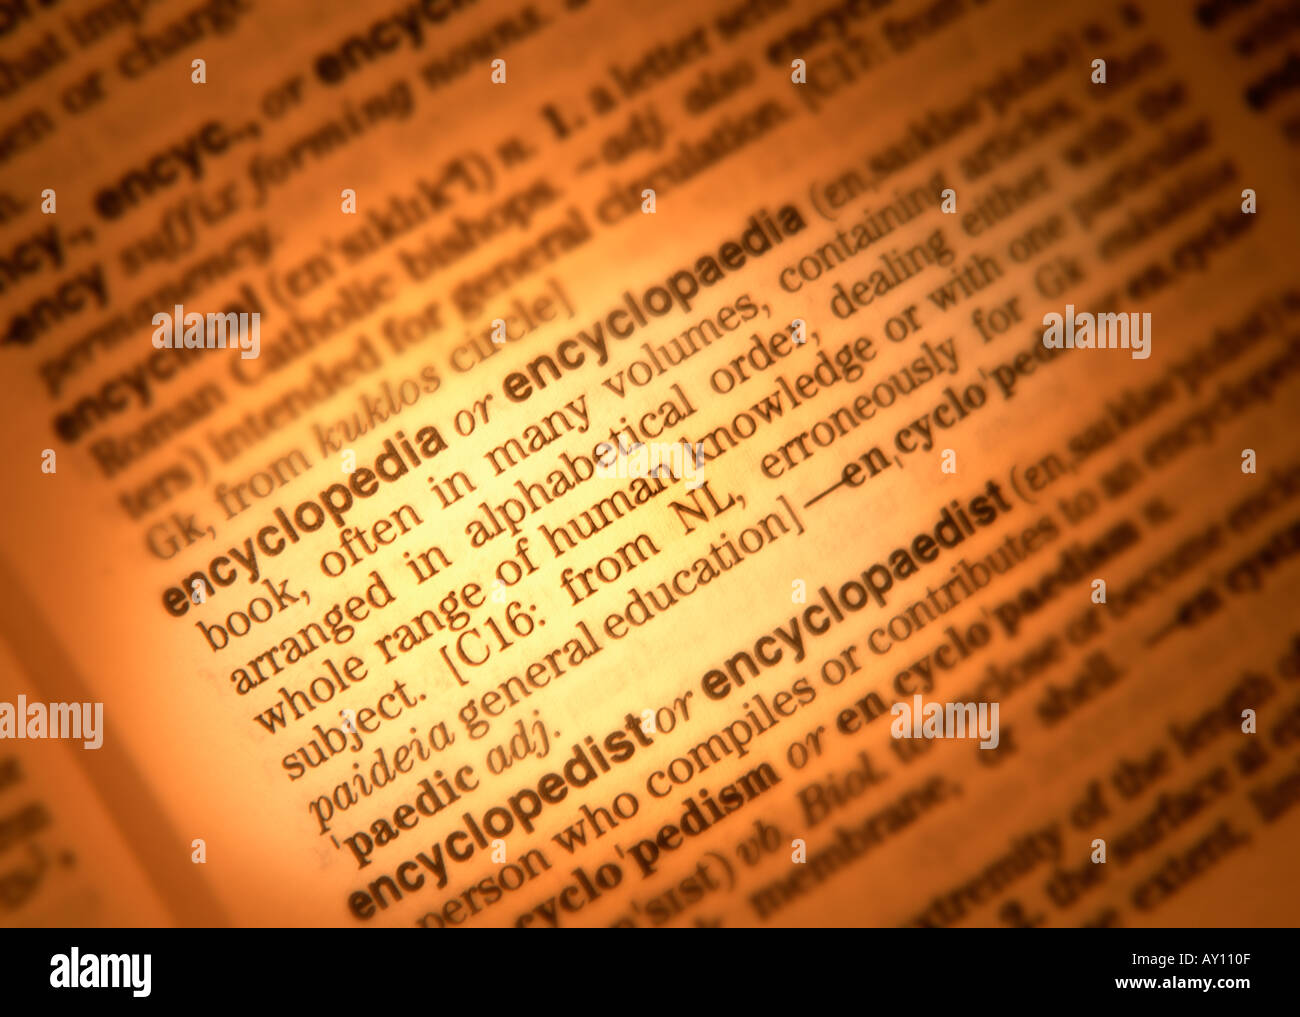 CLOSE UP OF DICTIONARY PAGE SHOWING DEFINITION OF THE WORD ENCYCLOPEDIA  ENCYCLOPEDIA   Stock Image